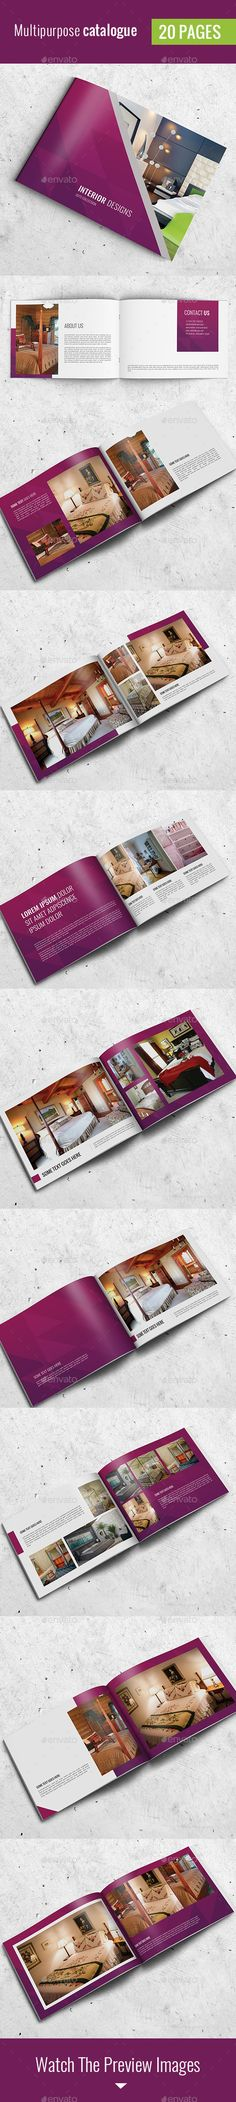 Simple Catalog / Portfolio / Brochure 2 — Photoshop PSD #book #booklet • Available here → https://graphicriver.net/item/simple-catalog-portfolio-brochure-2/12058792?ref=pxcr